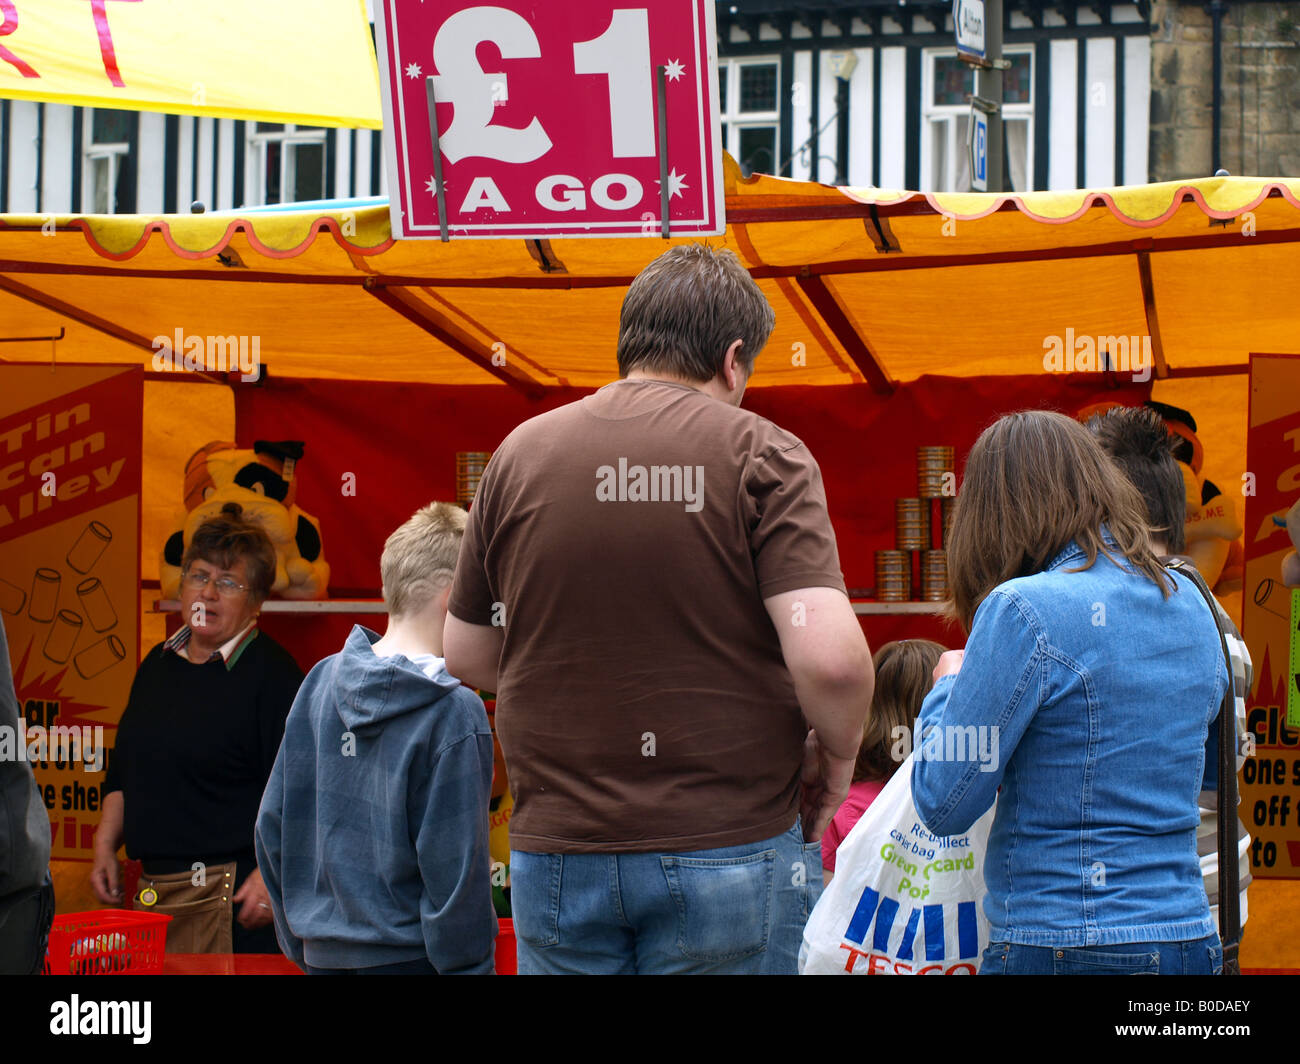 A pound a go stall at the ashover carnival,derbyshire,uk. - Stock Image